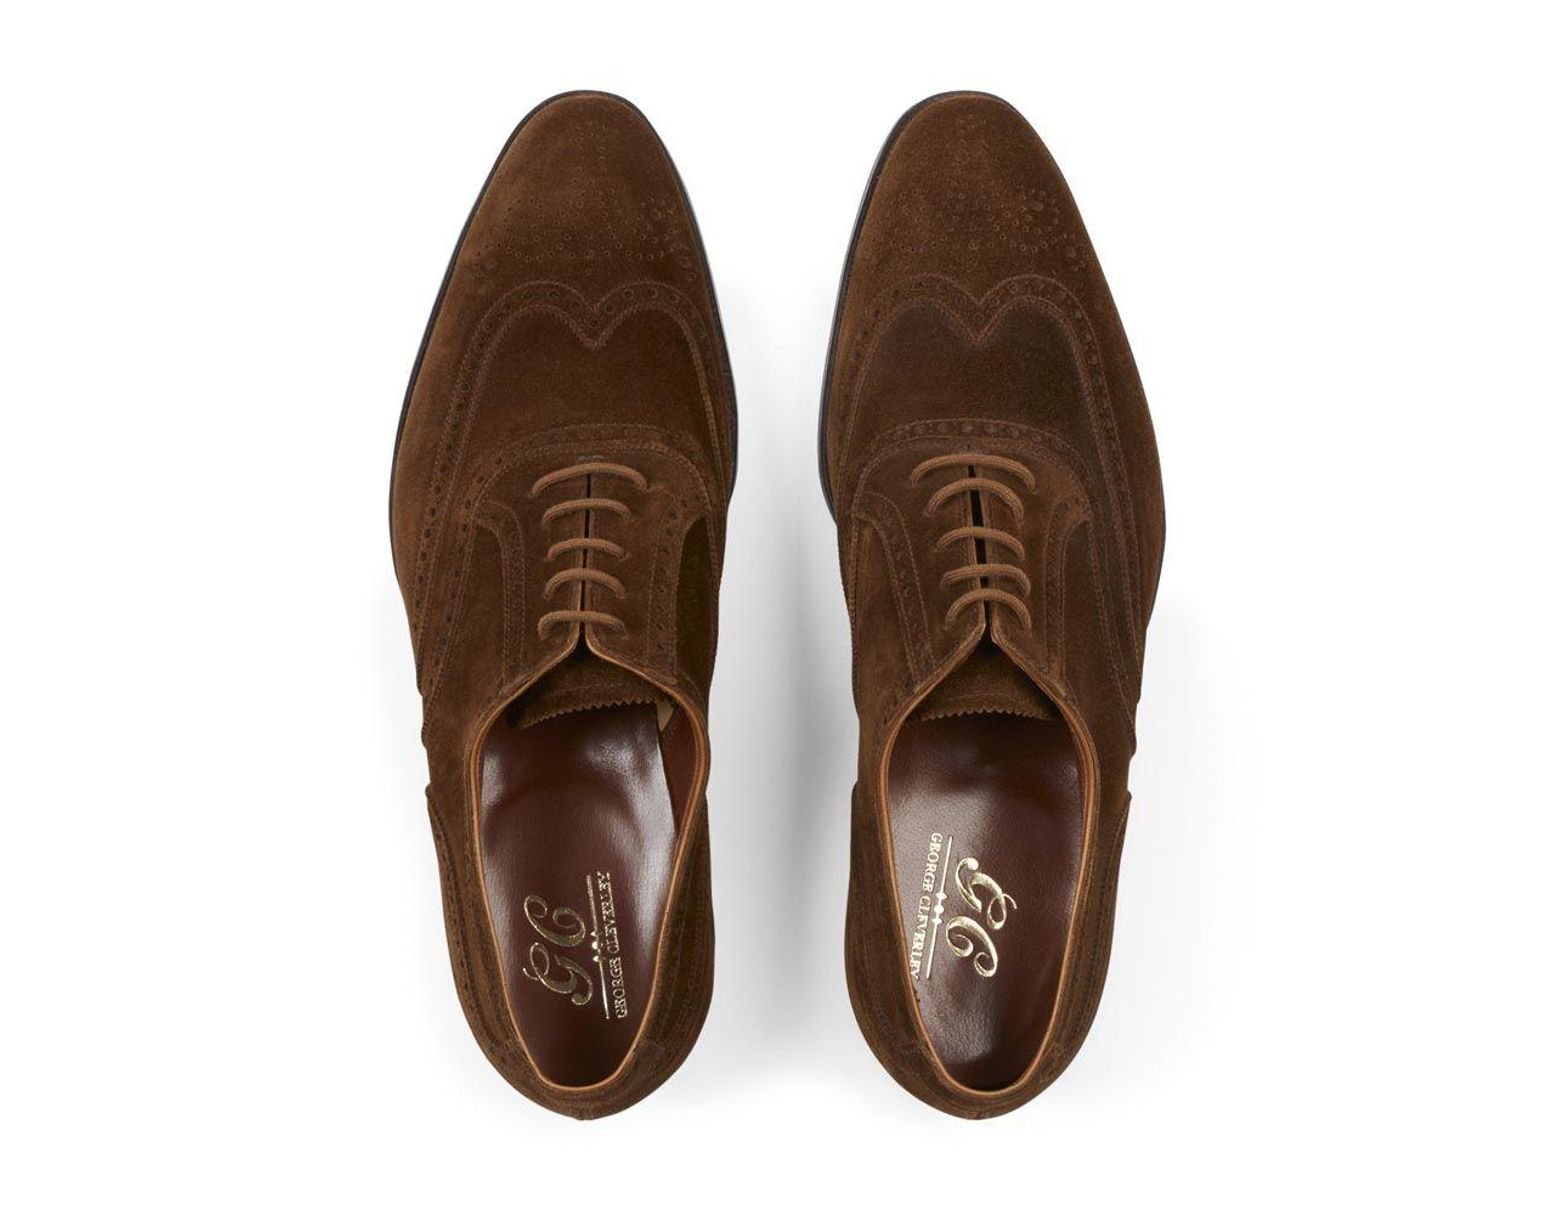 b17fc850818cb George Cleverley Tobacco Suede Reuben Oxford Brogues in Brown for Men - Lyst